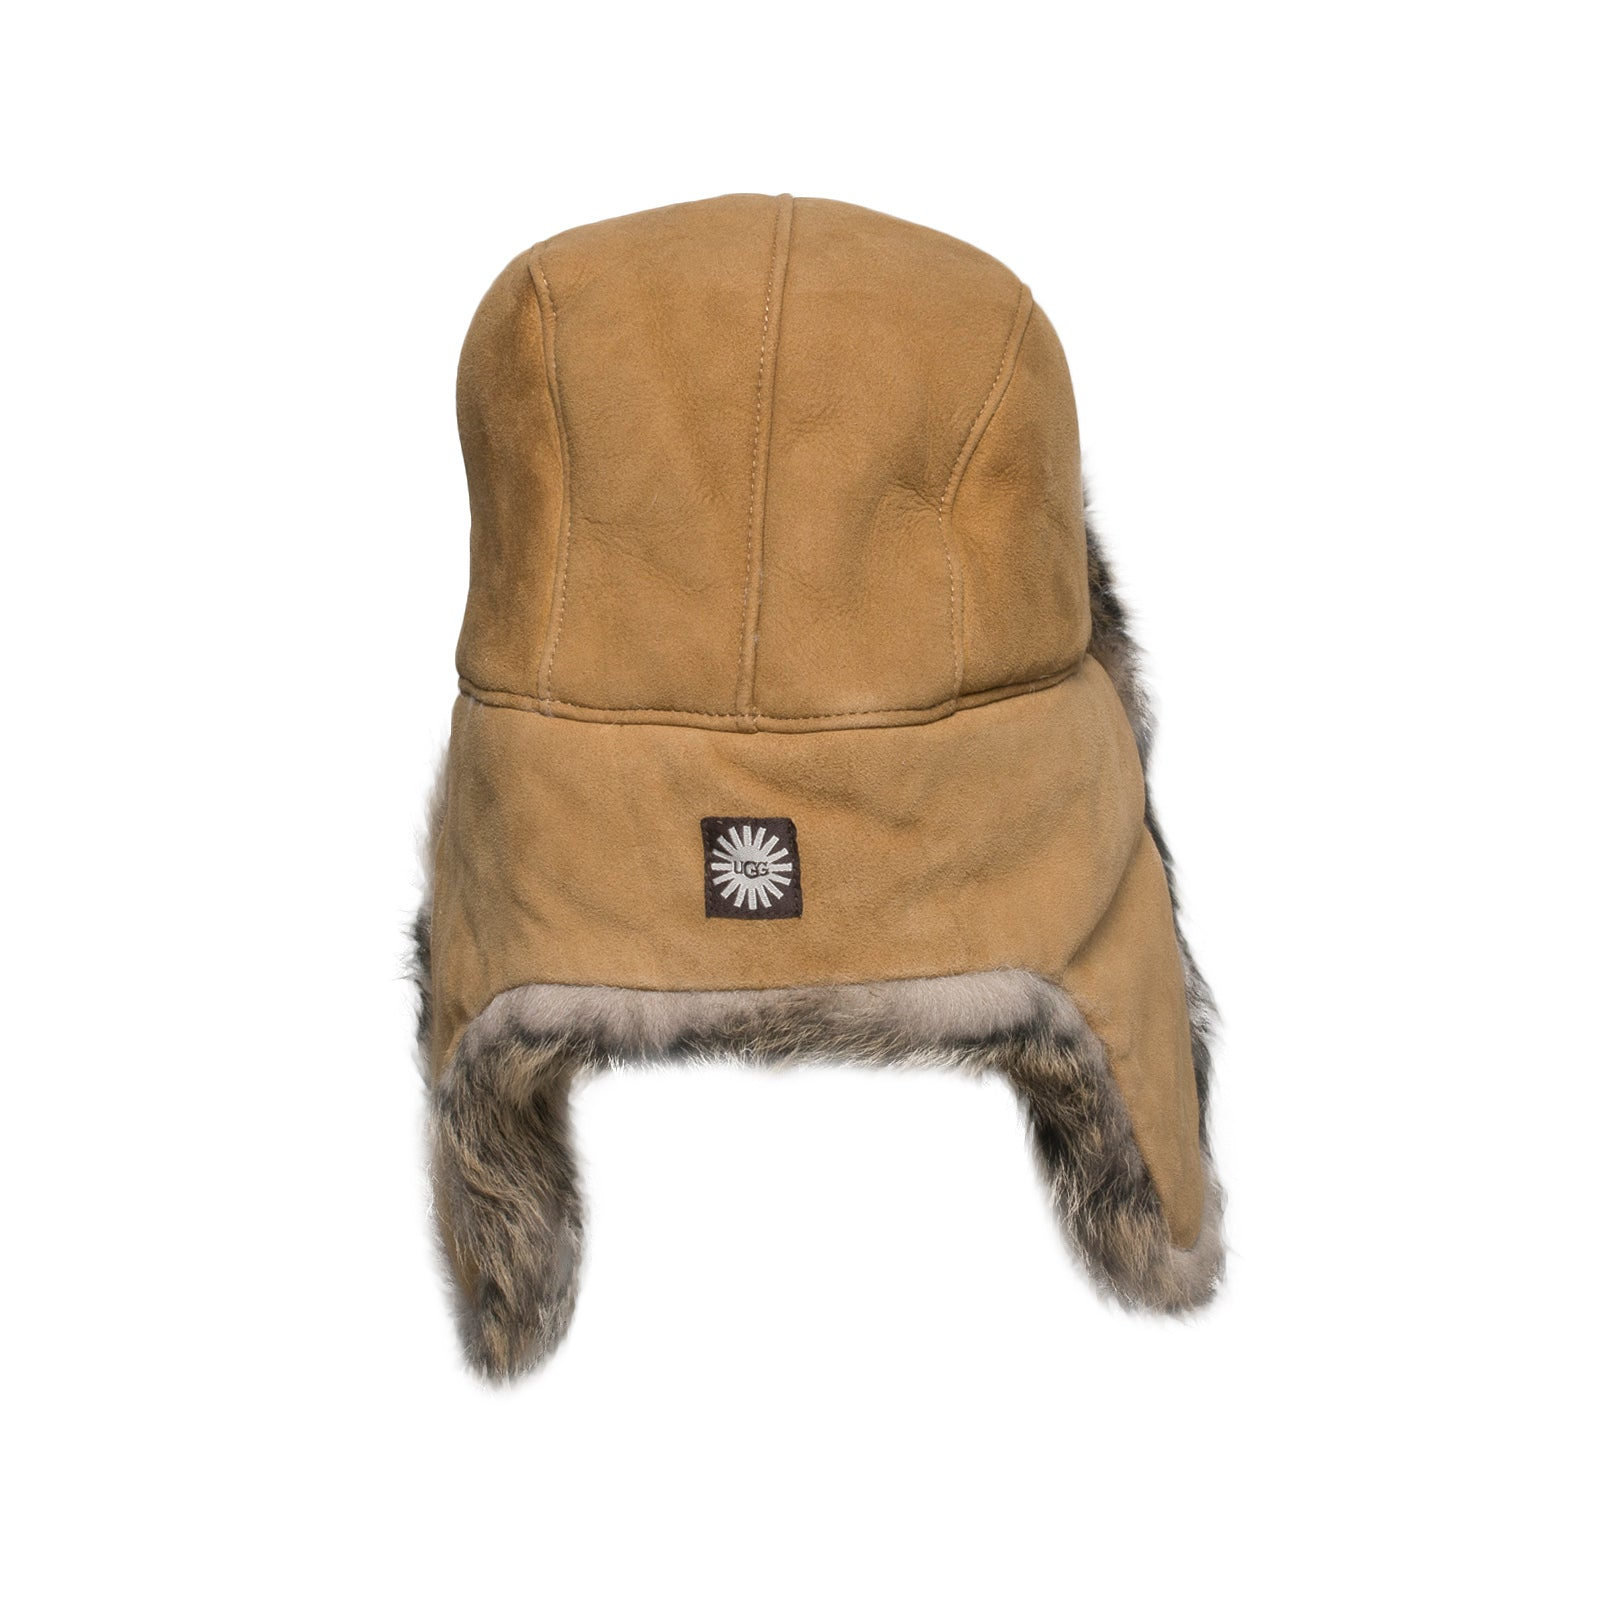 aec8e37349280 UGG Toscana Long Pile Trapper Chestnut Hat - Women s - MyCozyBoots